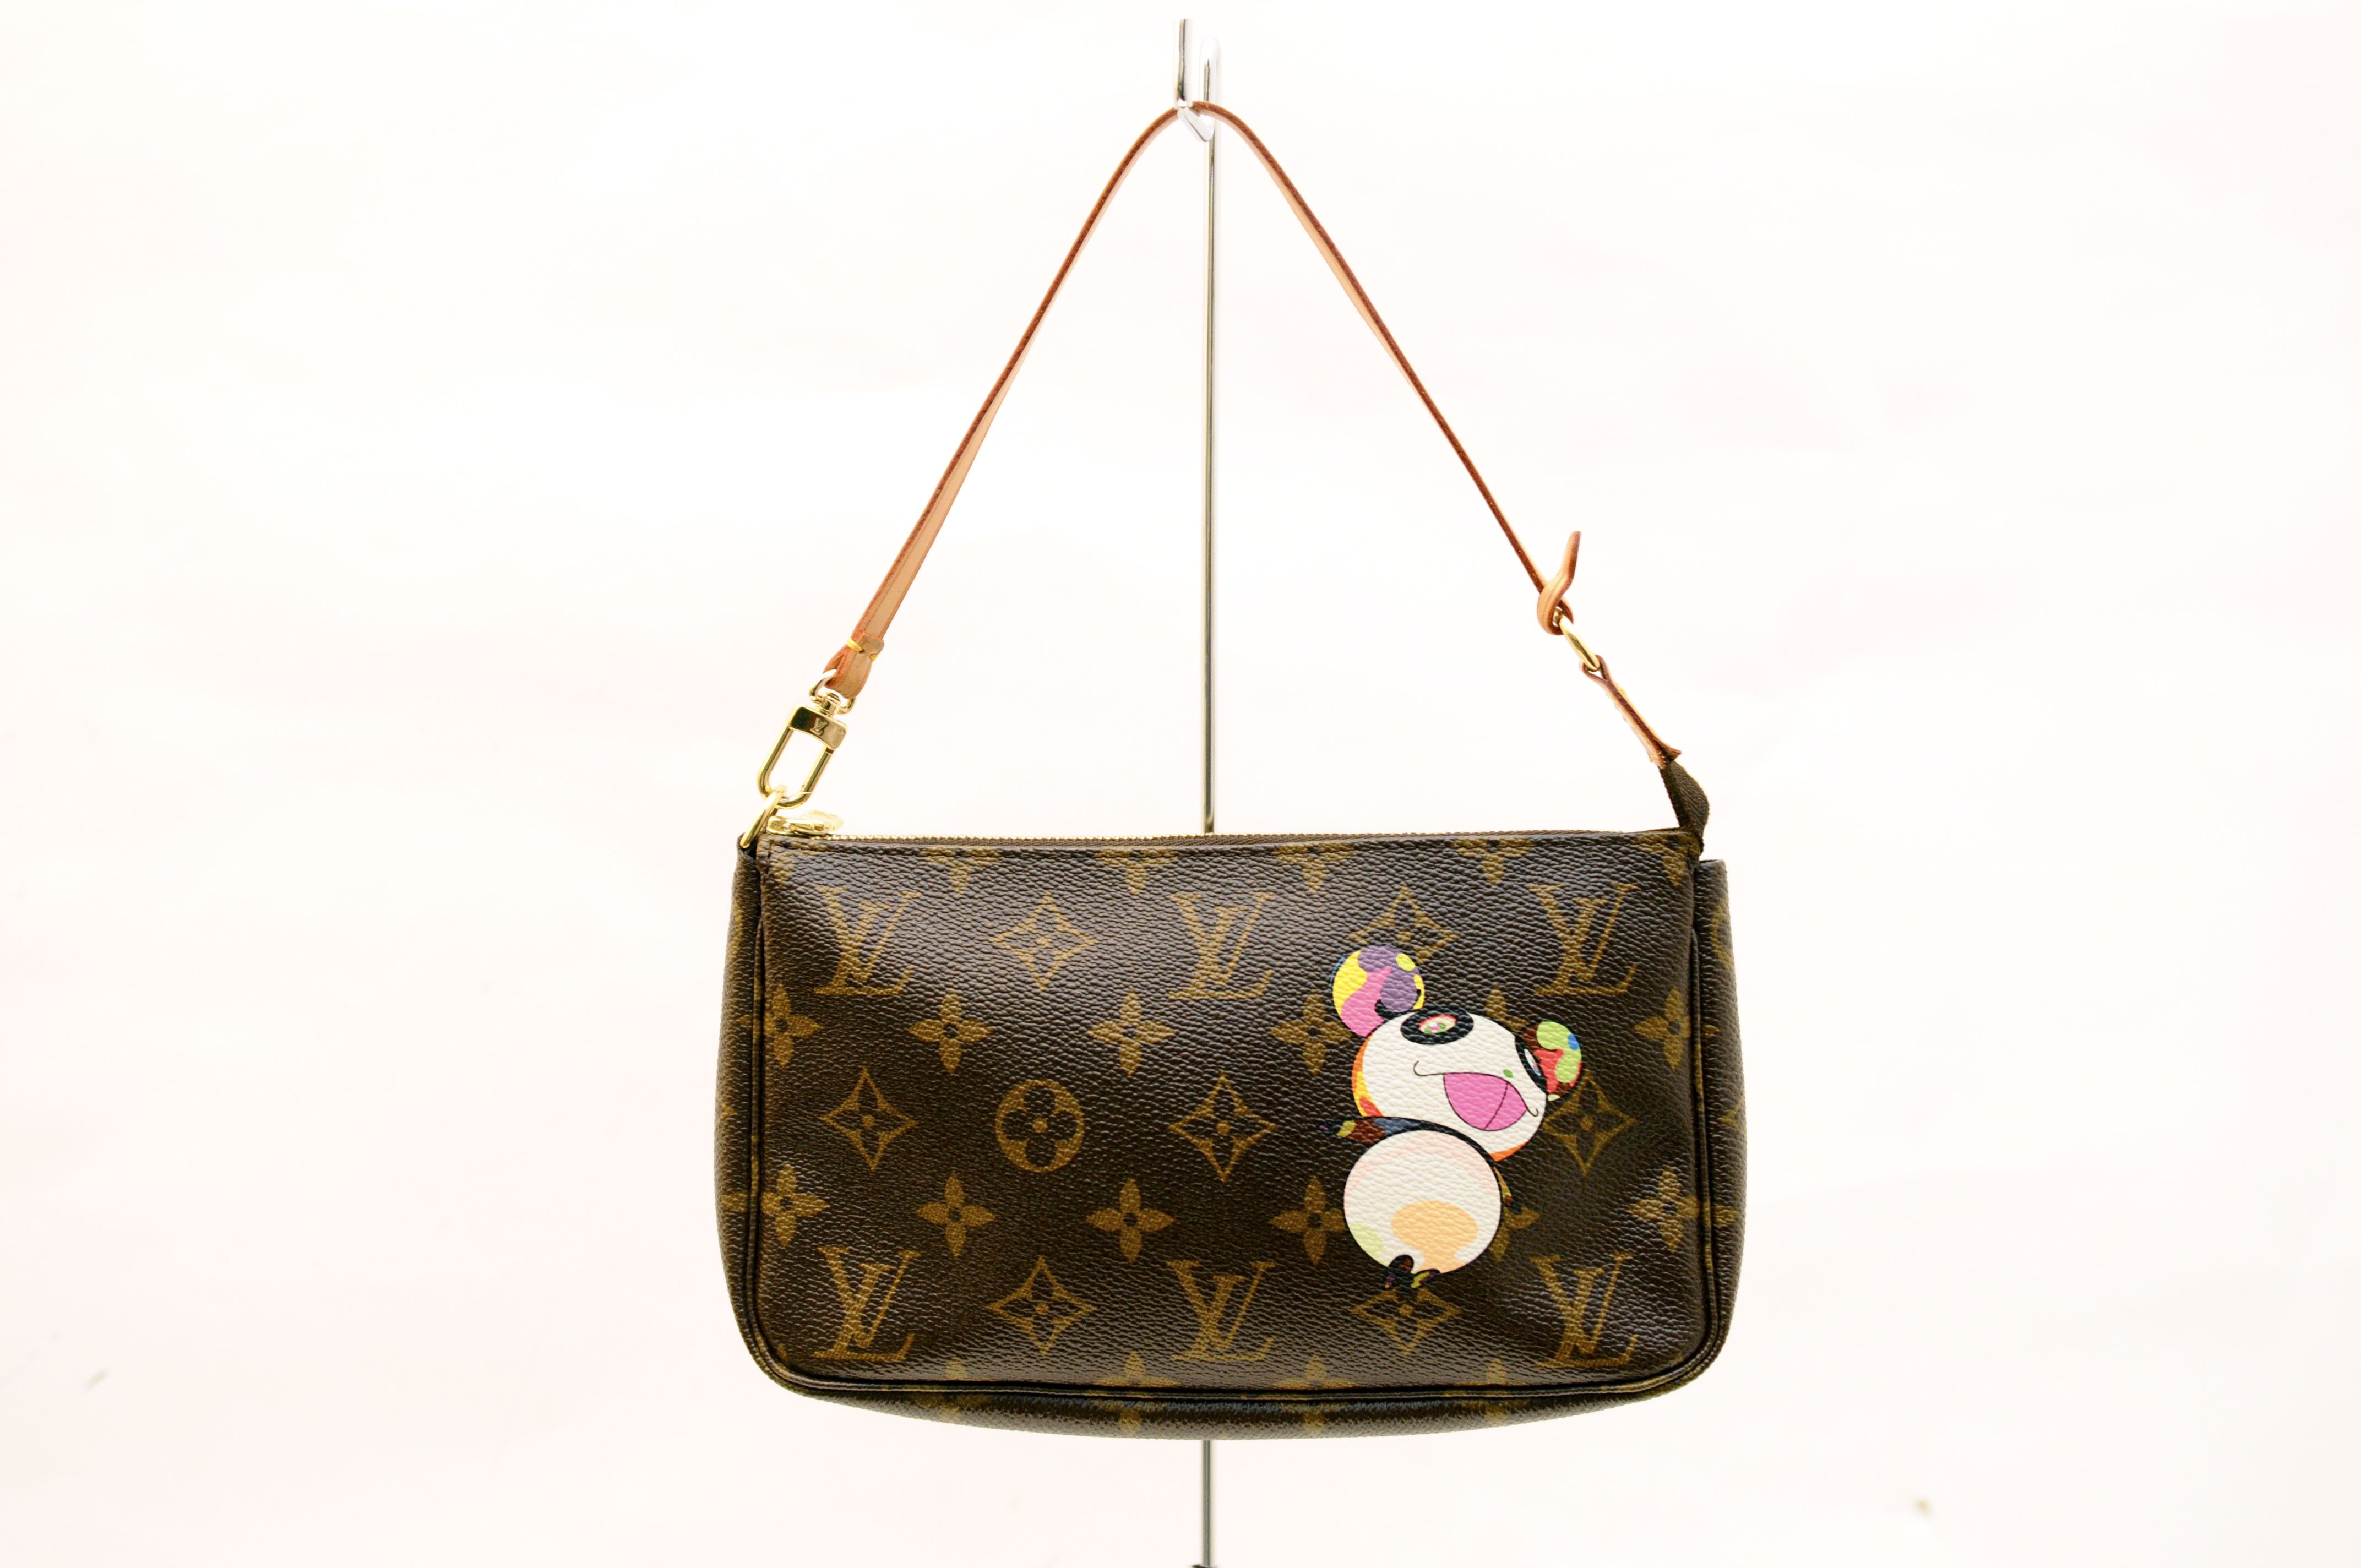 Limited Edition LV